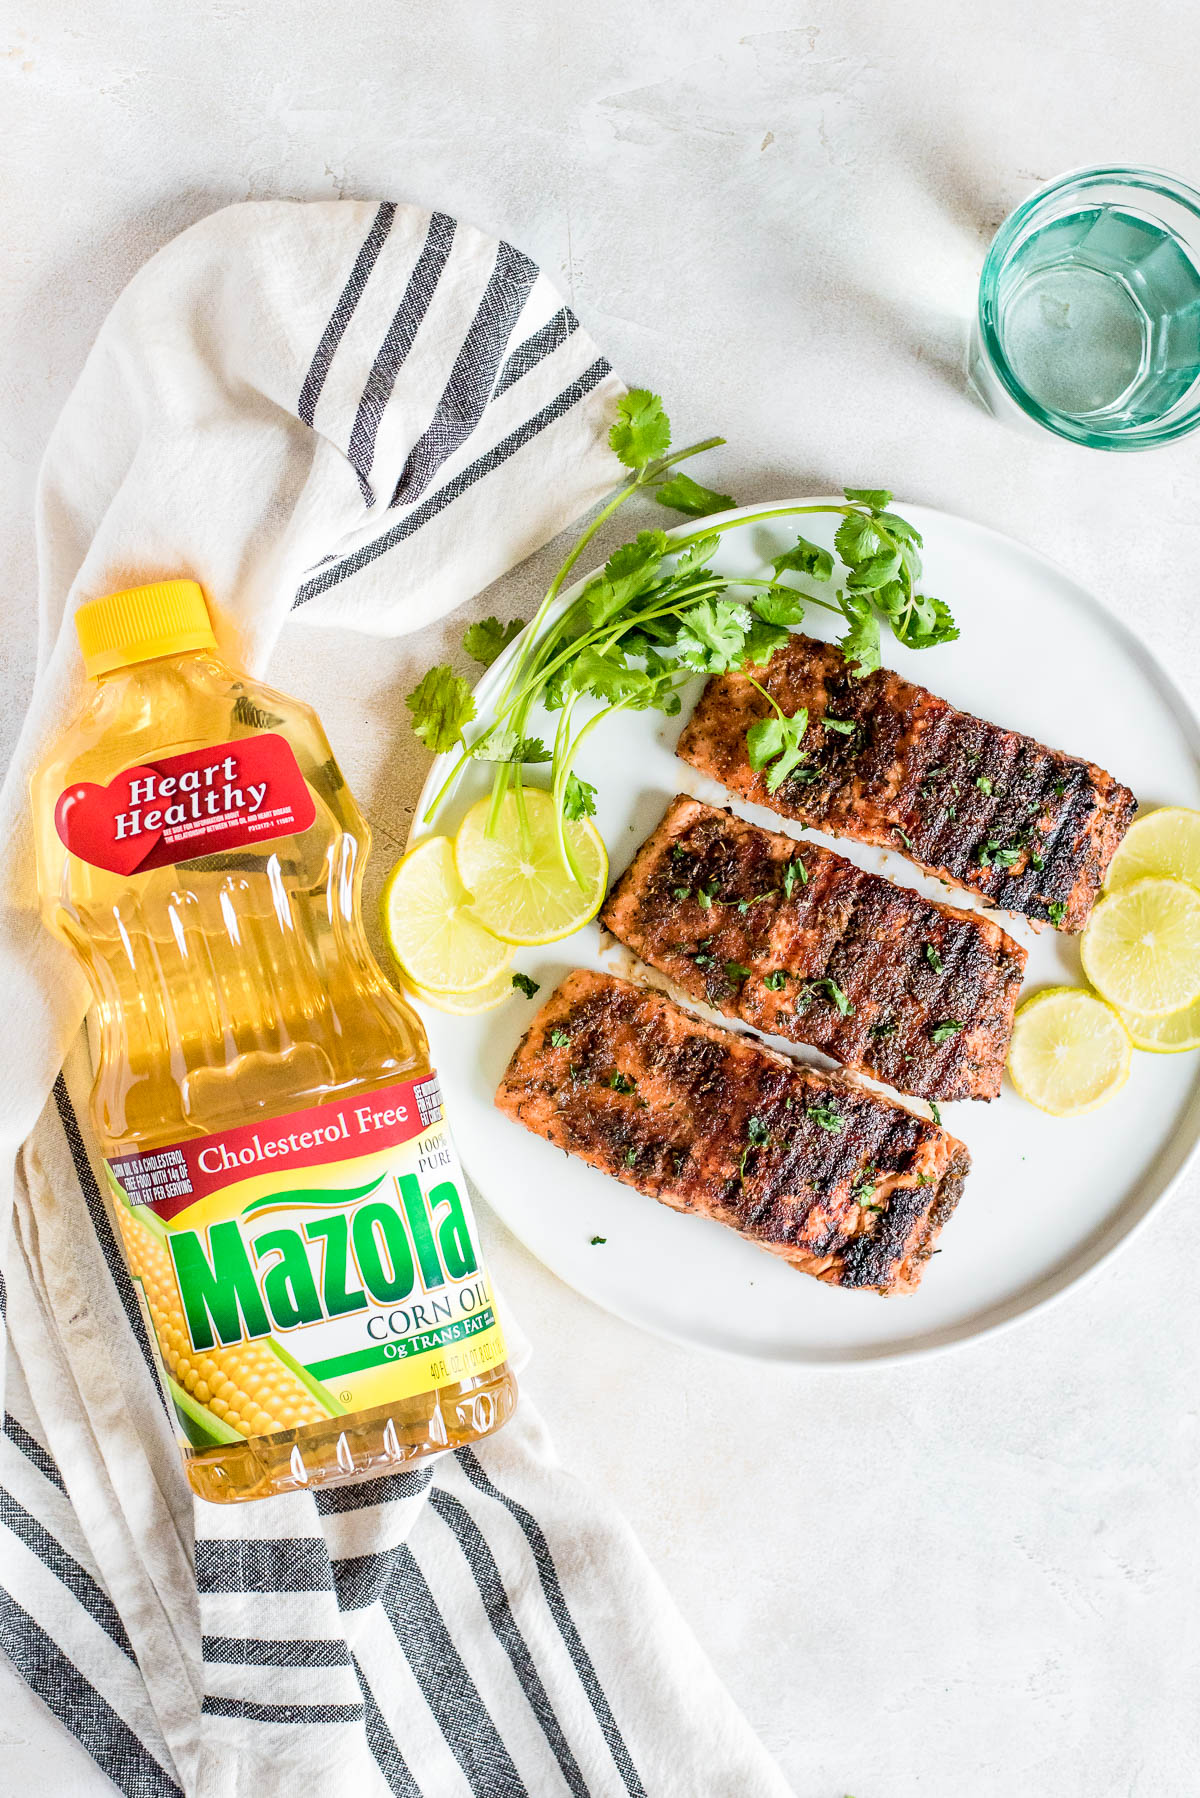 grilled salmon on plate next to bottle of mazola corn oil